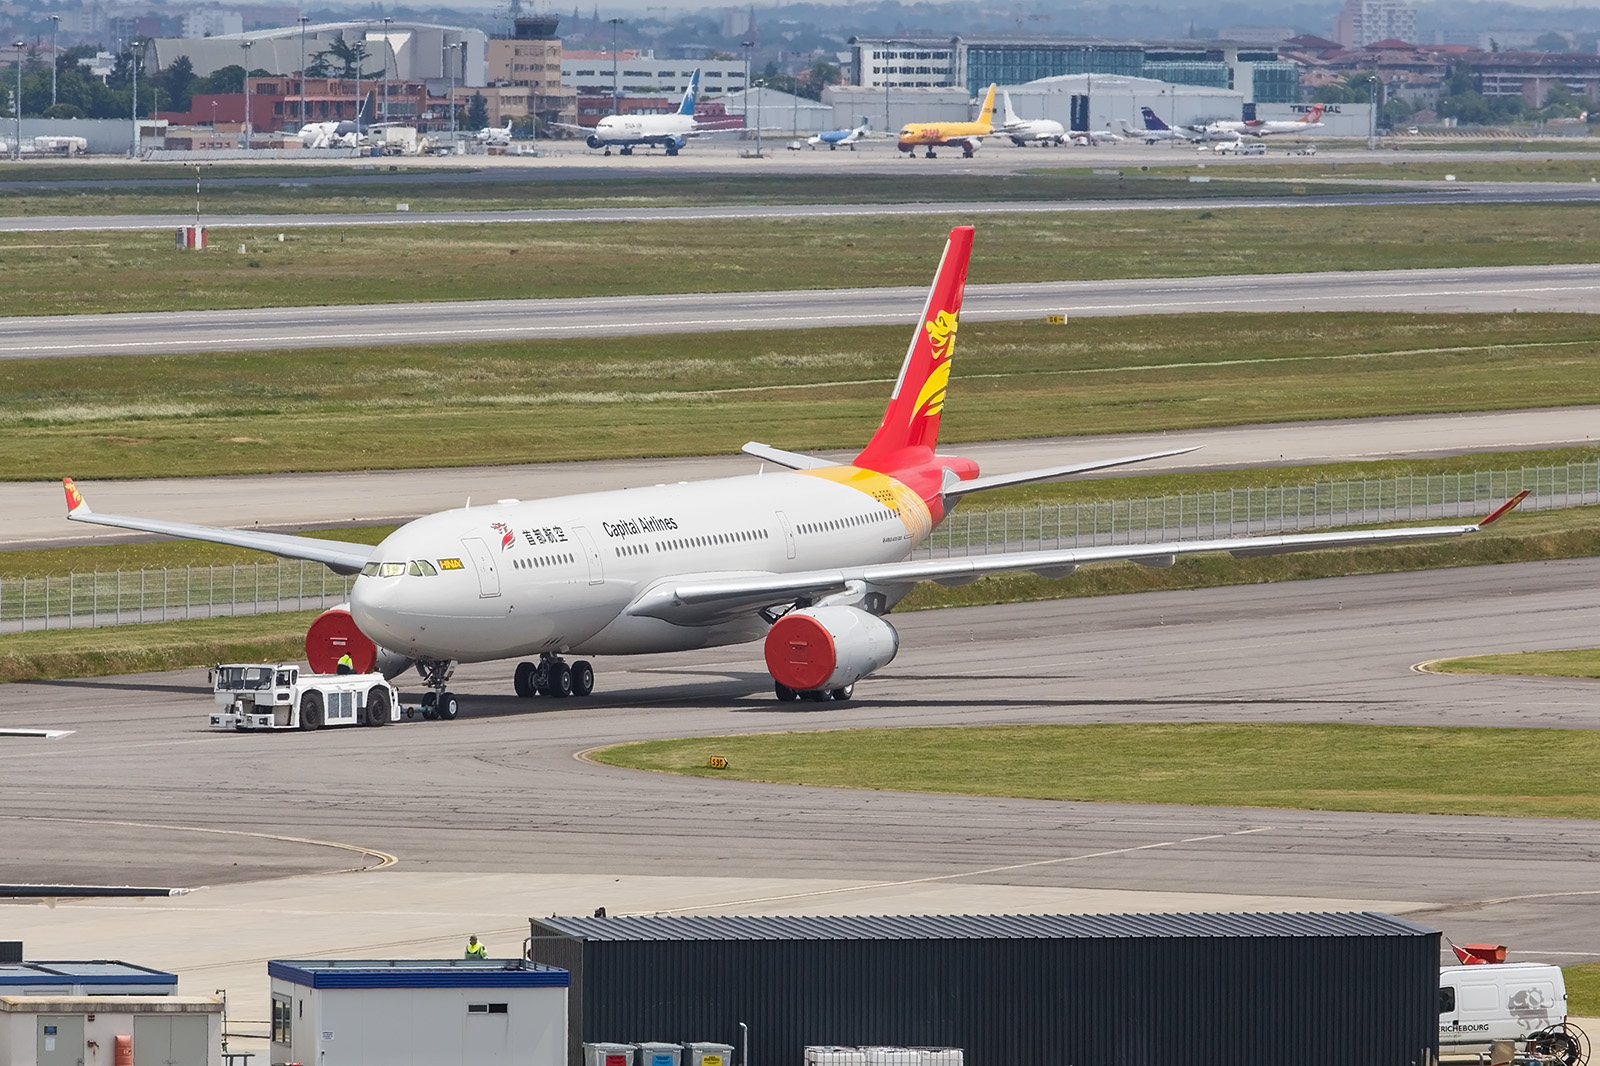 A330 für Capital Air, eine Airline der HNA Group.